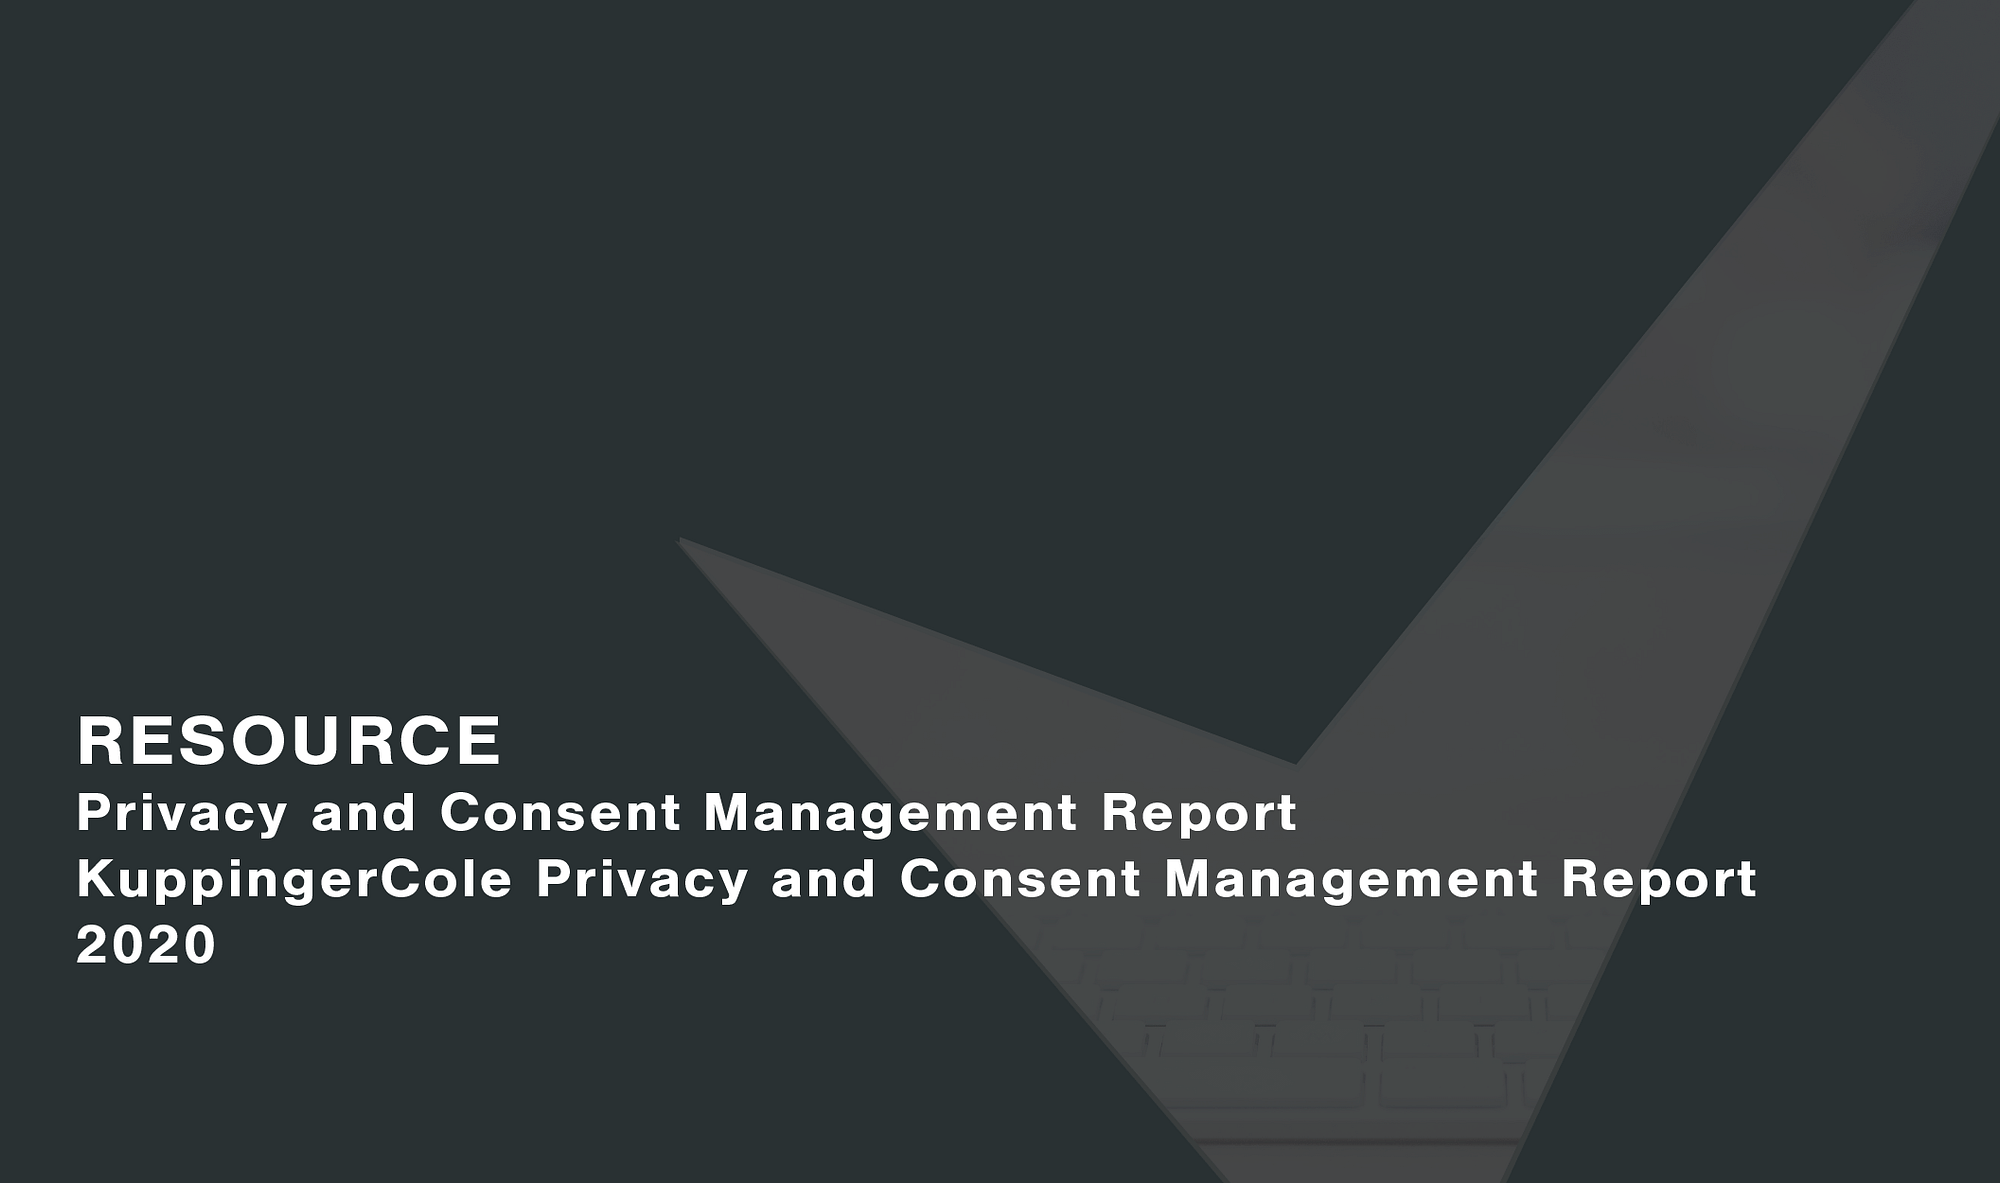 Report: KuppingerCole Privacy and Consent Management Report 2020 Cassie personal information & consent management